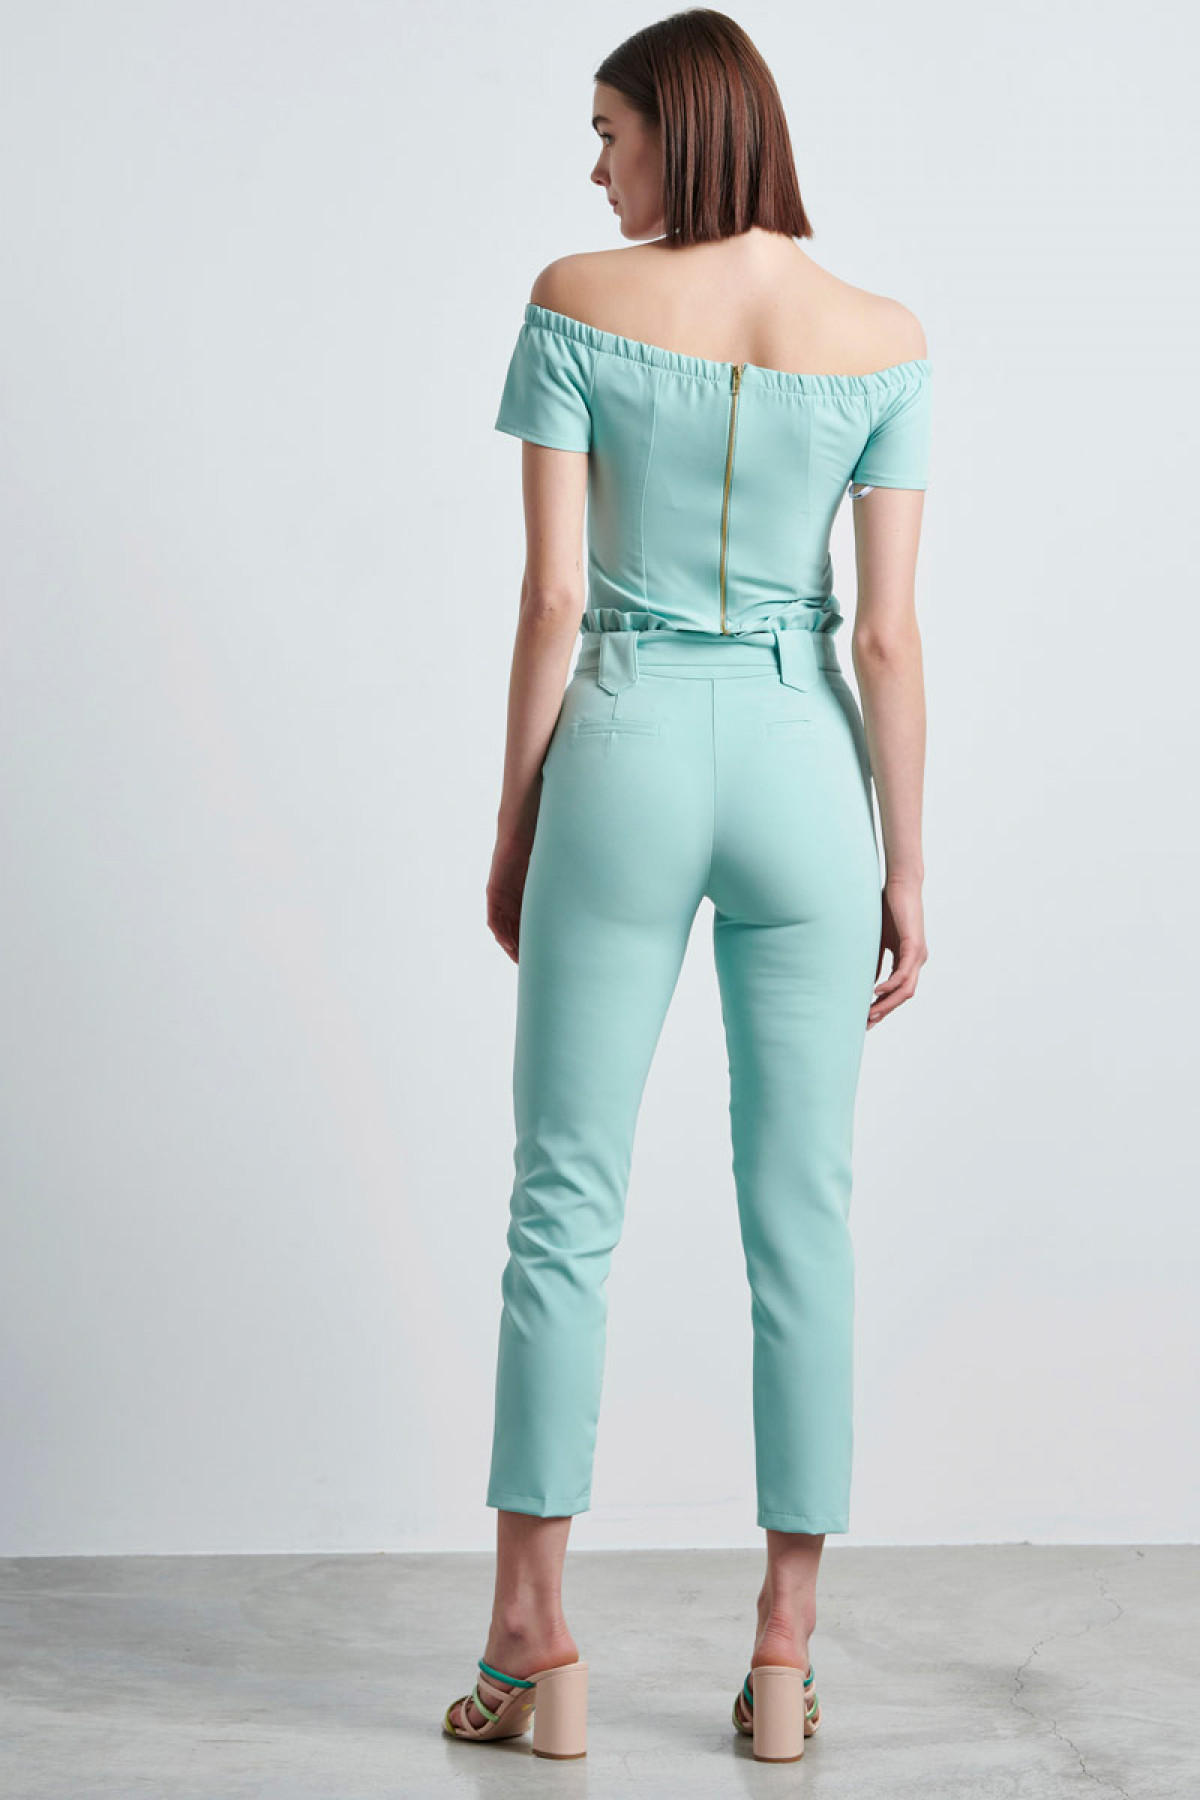 HIGH WAIST PAPERBAG TROUSERS IN MINT